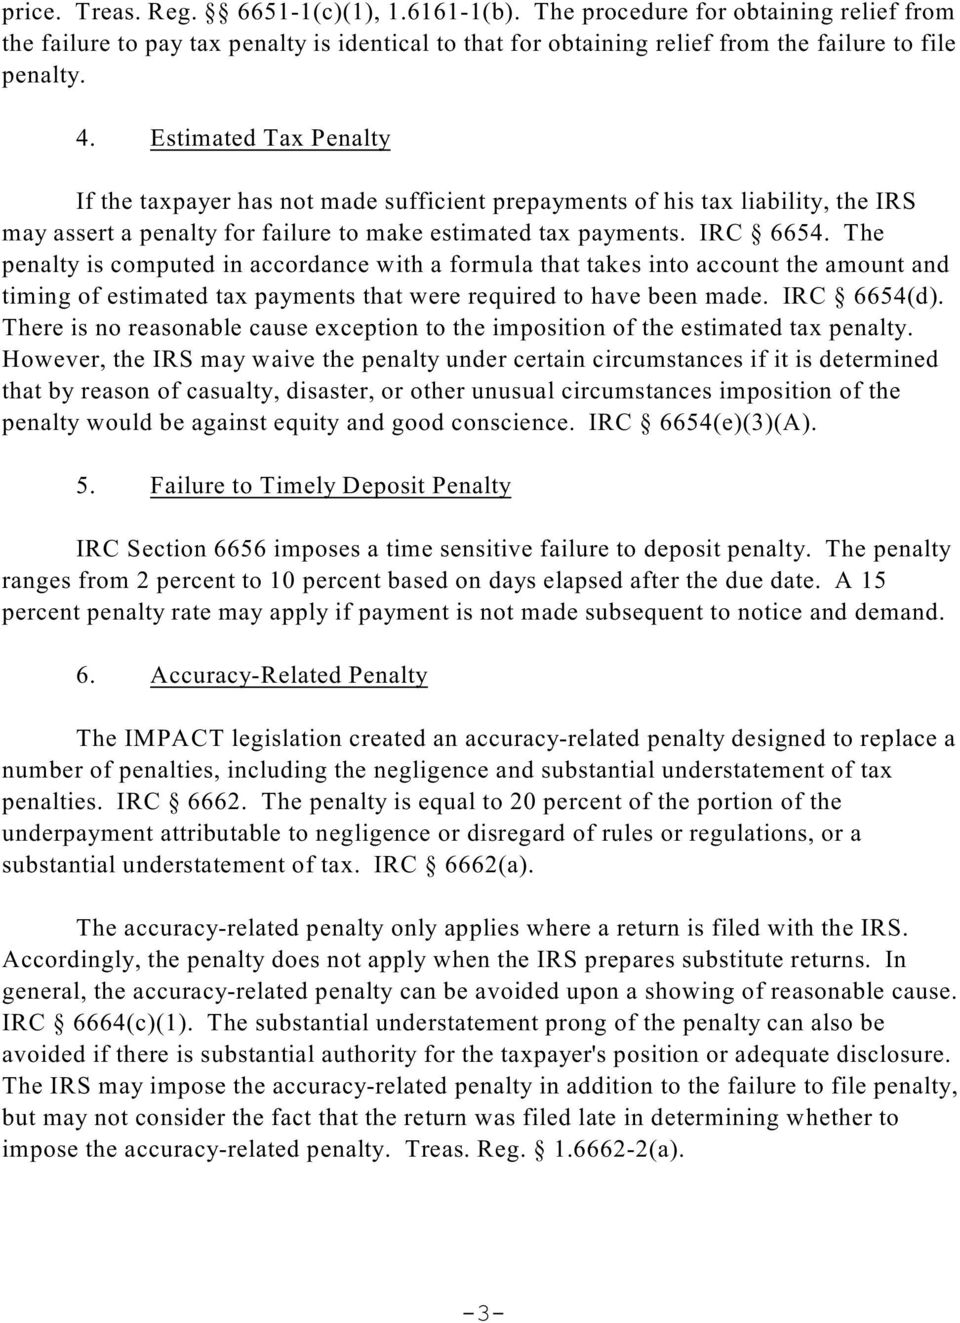 The penalty is computed in accordance with a formula that takes into account the amount and timing of estimated tax payments that were required to have been made. IRC 6654(d).